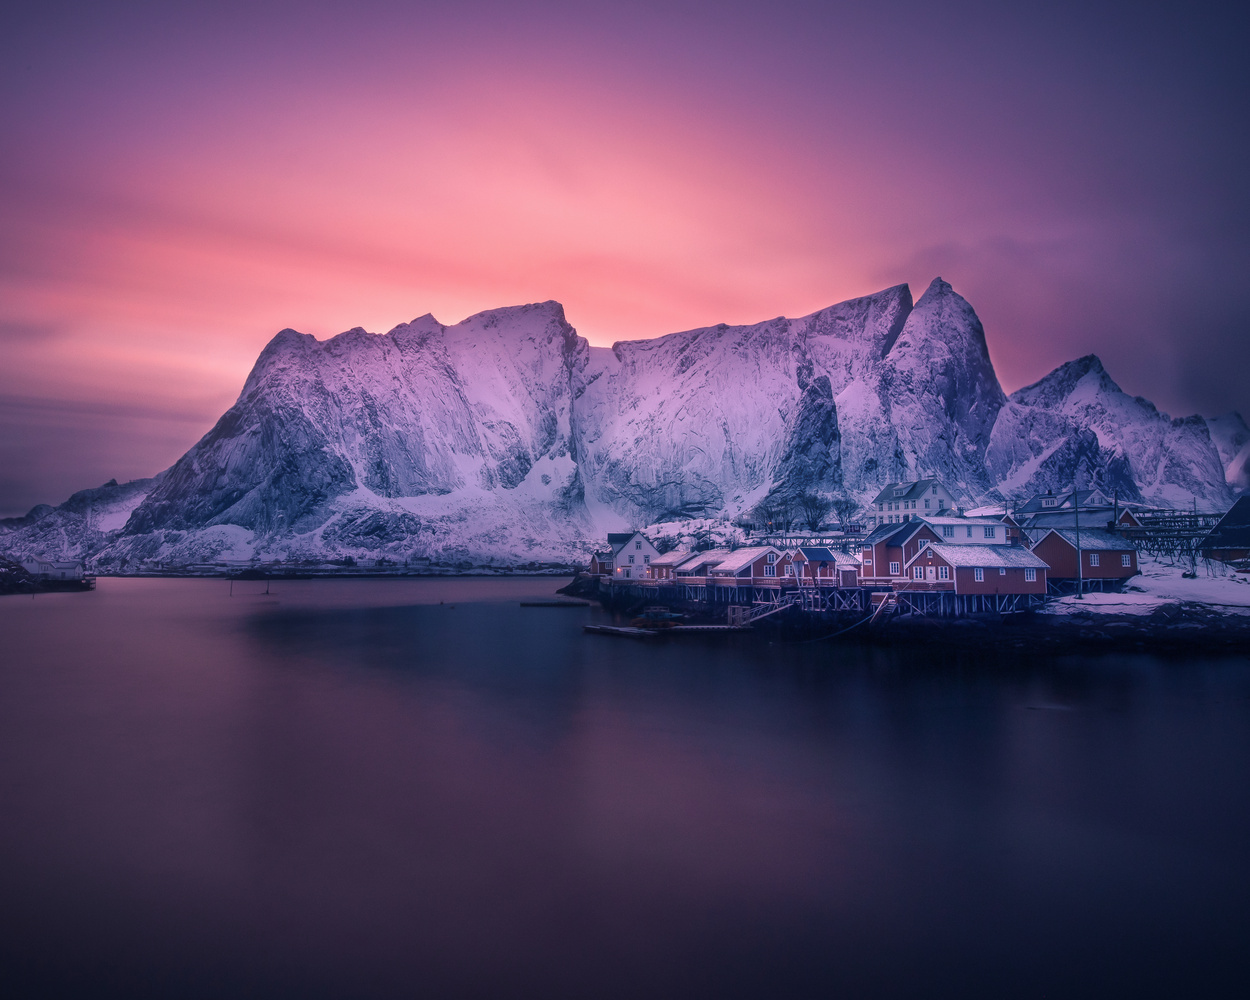 Last glow of light over Reine, Lofoten by Roger Kristiansen